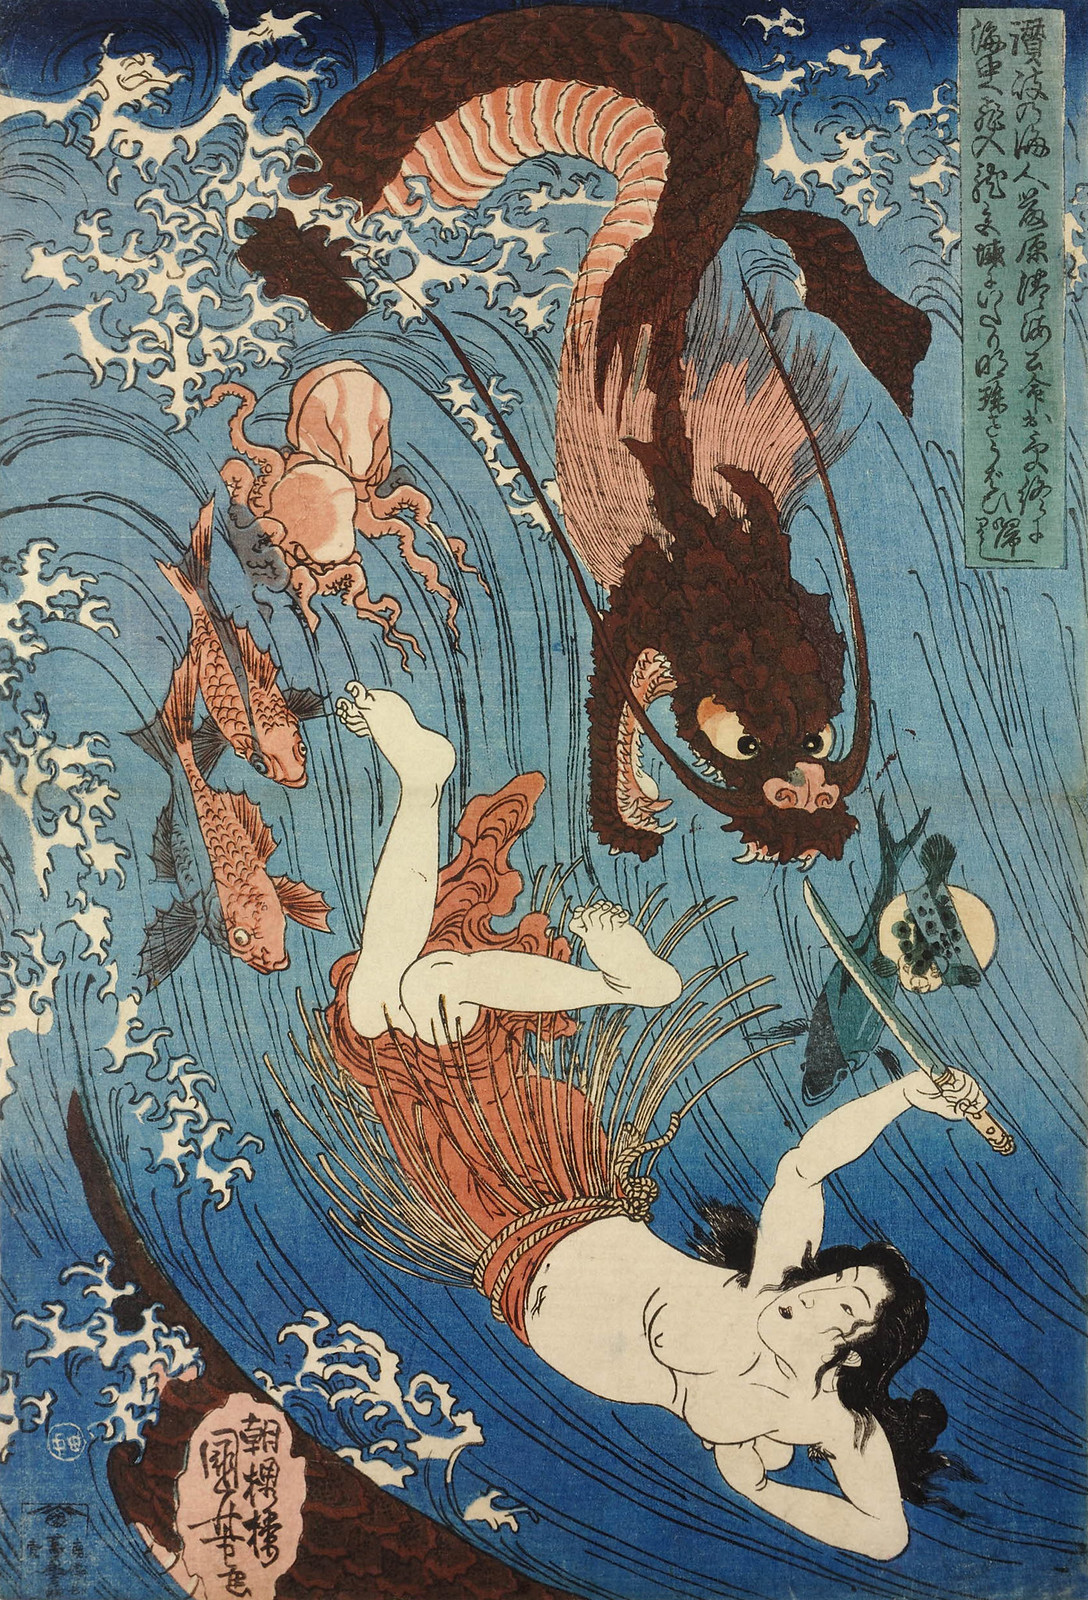 Utagawa Kuniyoshi - The diver Tamatori, who has penetrated the Dragon King's palace, plunging through waves with outstretched knife and Treasure Pearl, pursued by a dragon while escaping from the Dragon King, Edo Period